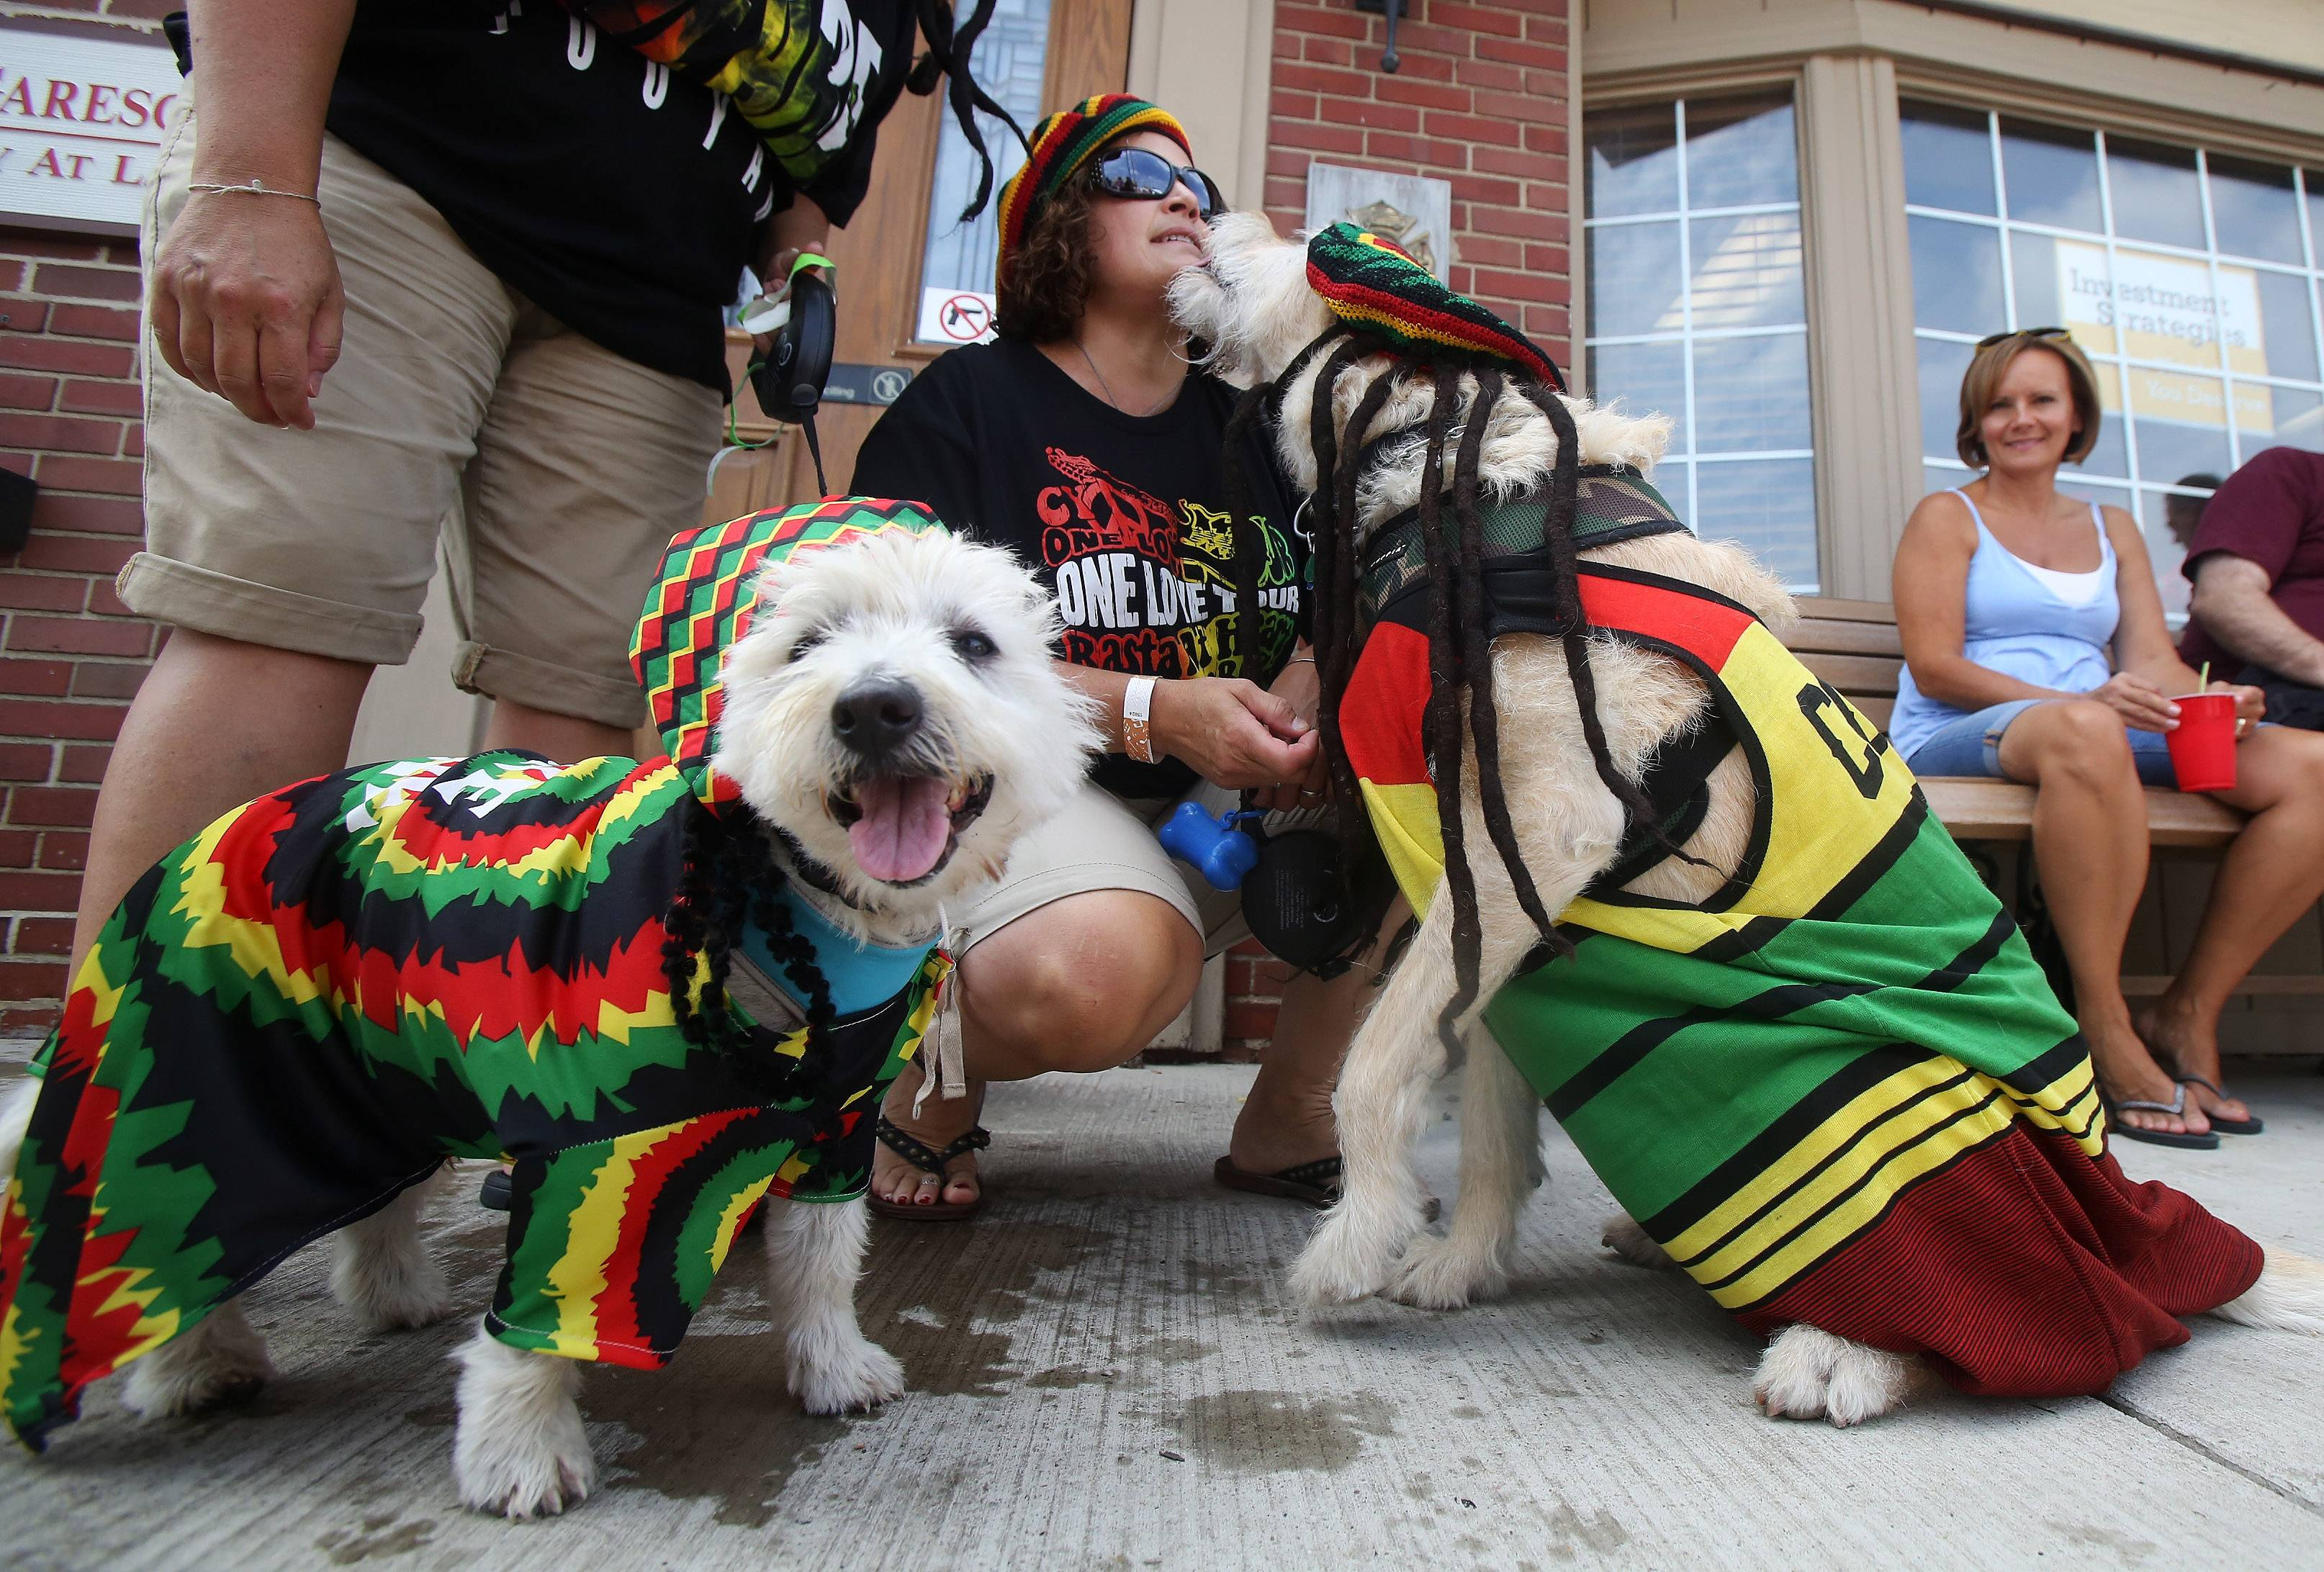 Nicolle Carfagnini of Palatine receives a kiss from Comiskey as Reggie, left, watches the crowd during the annual Sweet Pea Pet Parade Sunday in downtown Palatine. The group was dressed as part of the Bob Marley band for the parade. More than 70 pets participated in the parade.